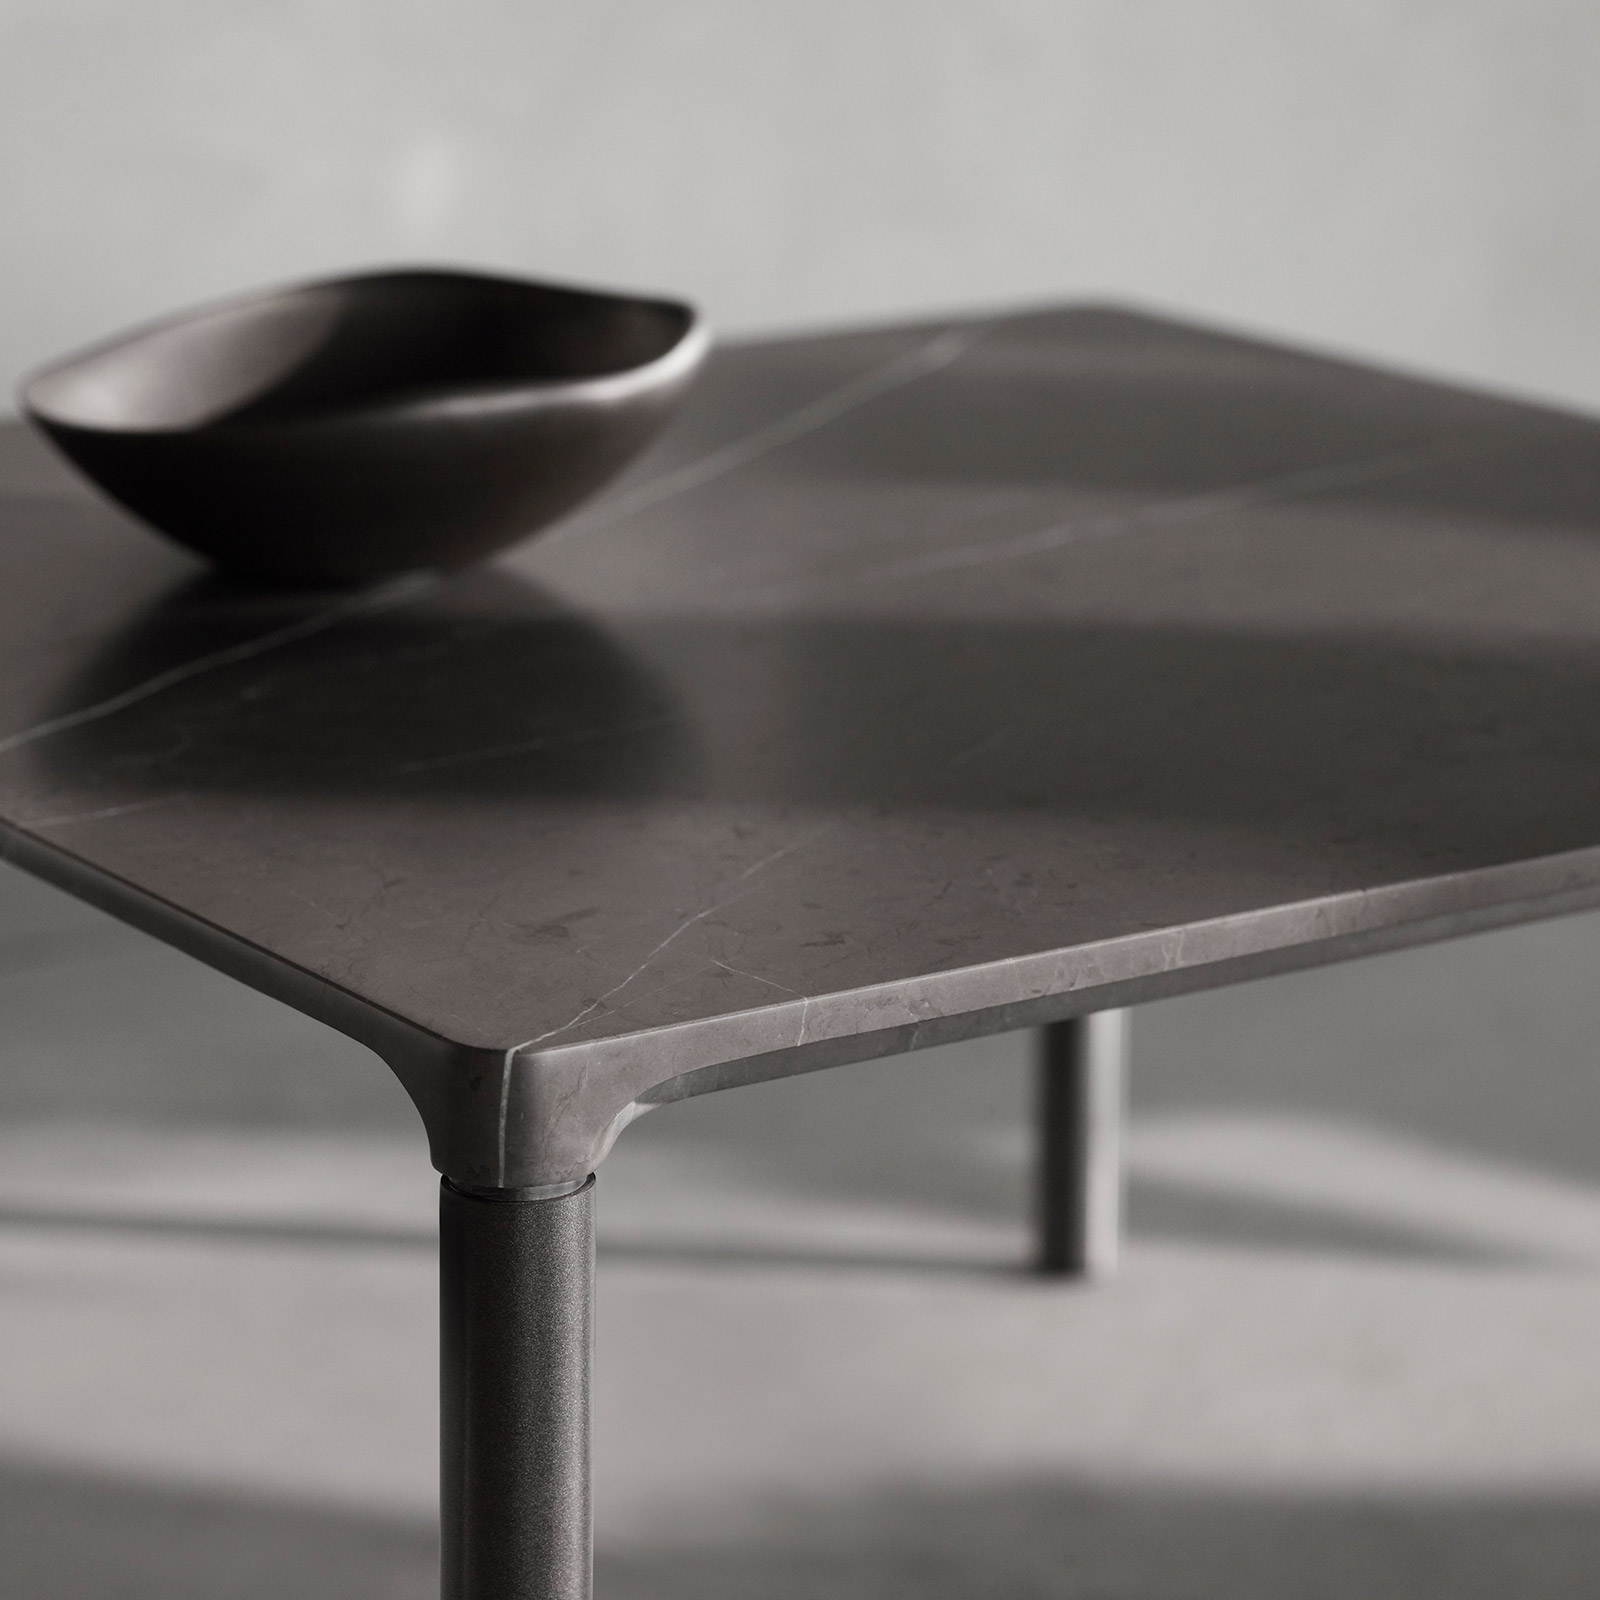 grey marble coffee table and bowl with sunlight and shadows